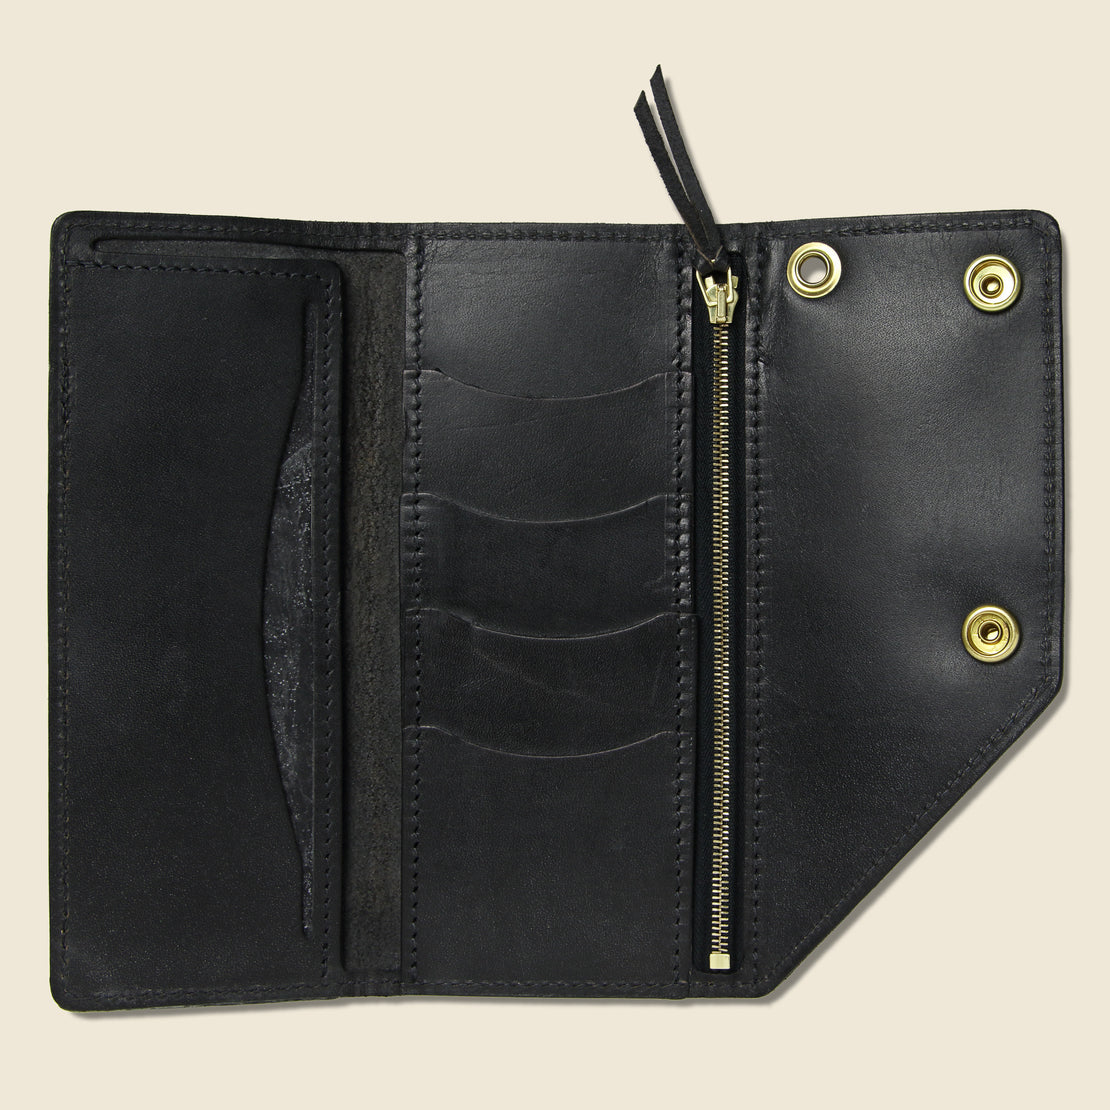 Workman Wallet - Black - Tanner - STAG Provisions - Accessories - Wallets